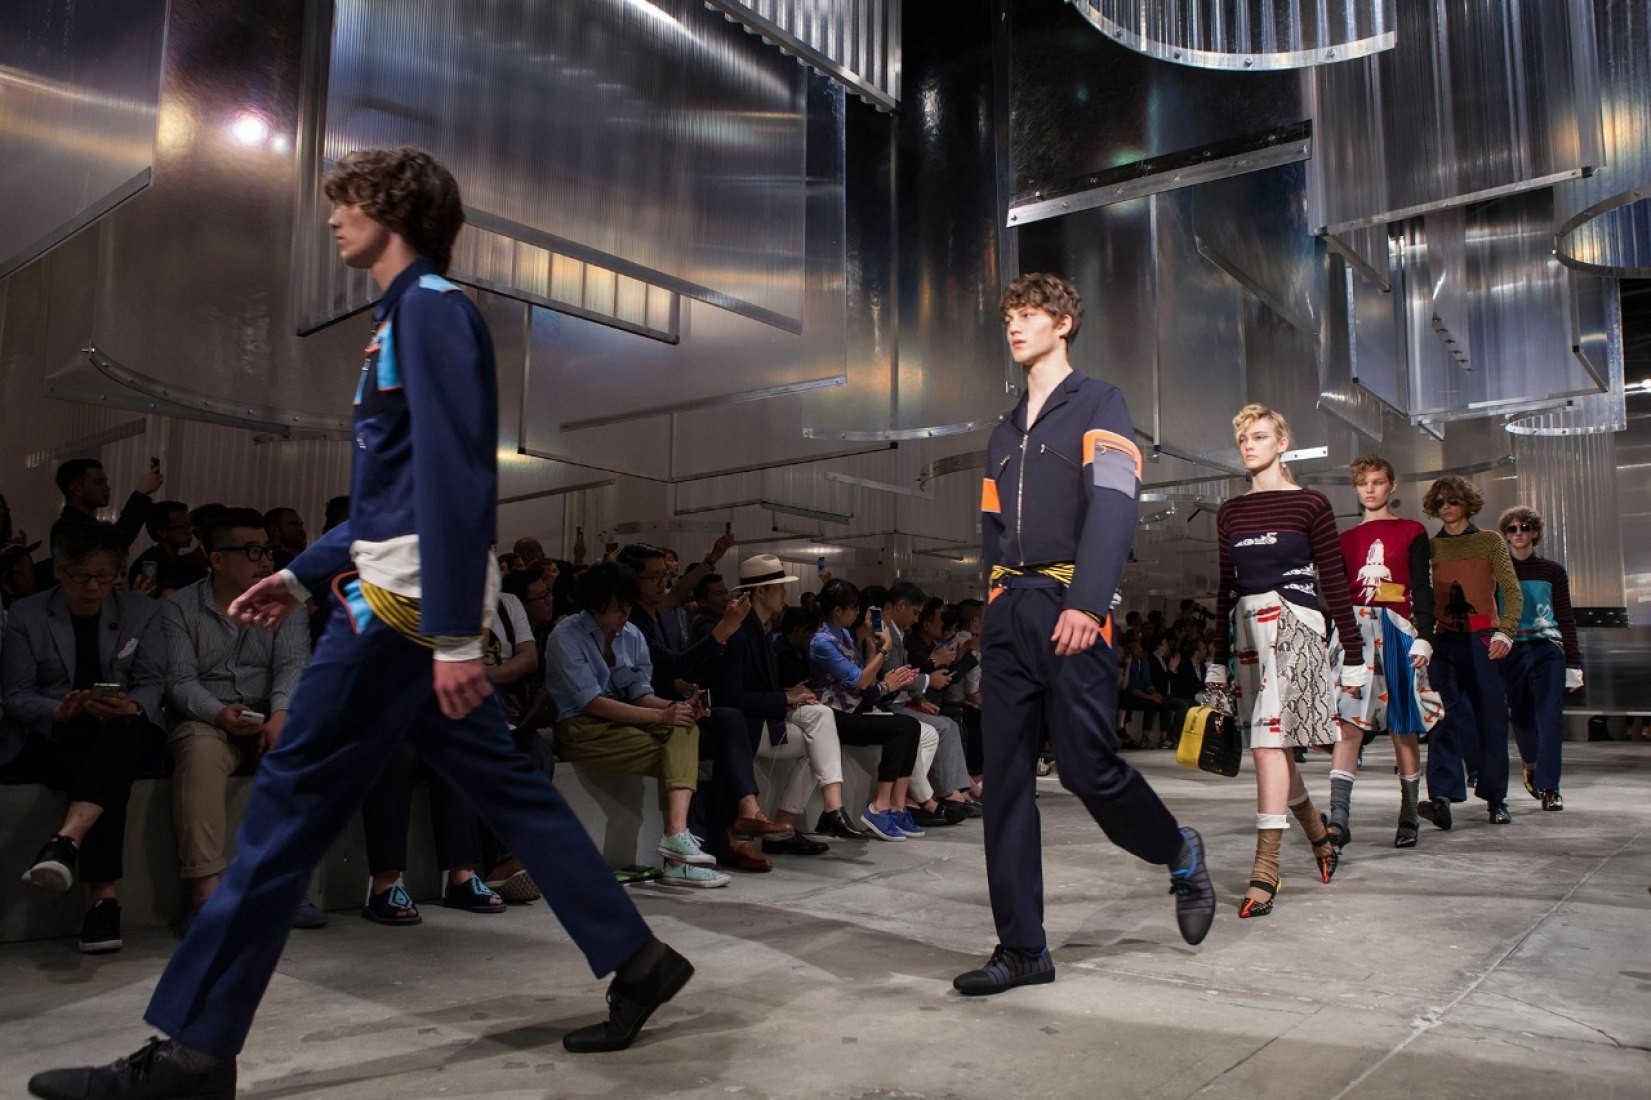 Prada. men's and women's walkway by OMA. Image courtesy of the Prada.